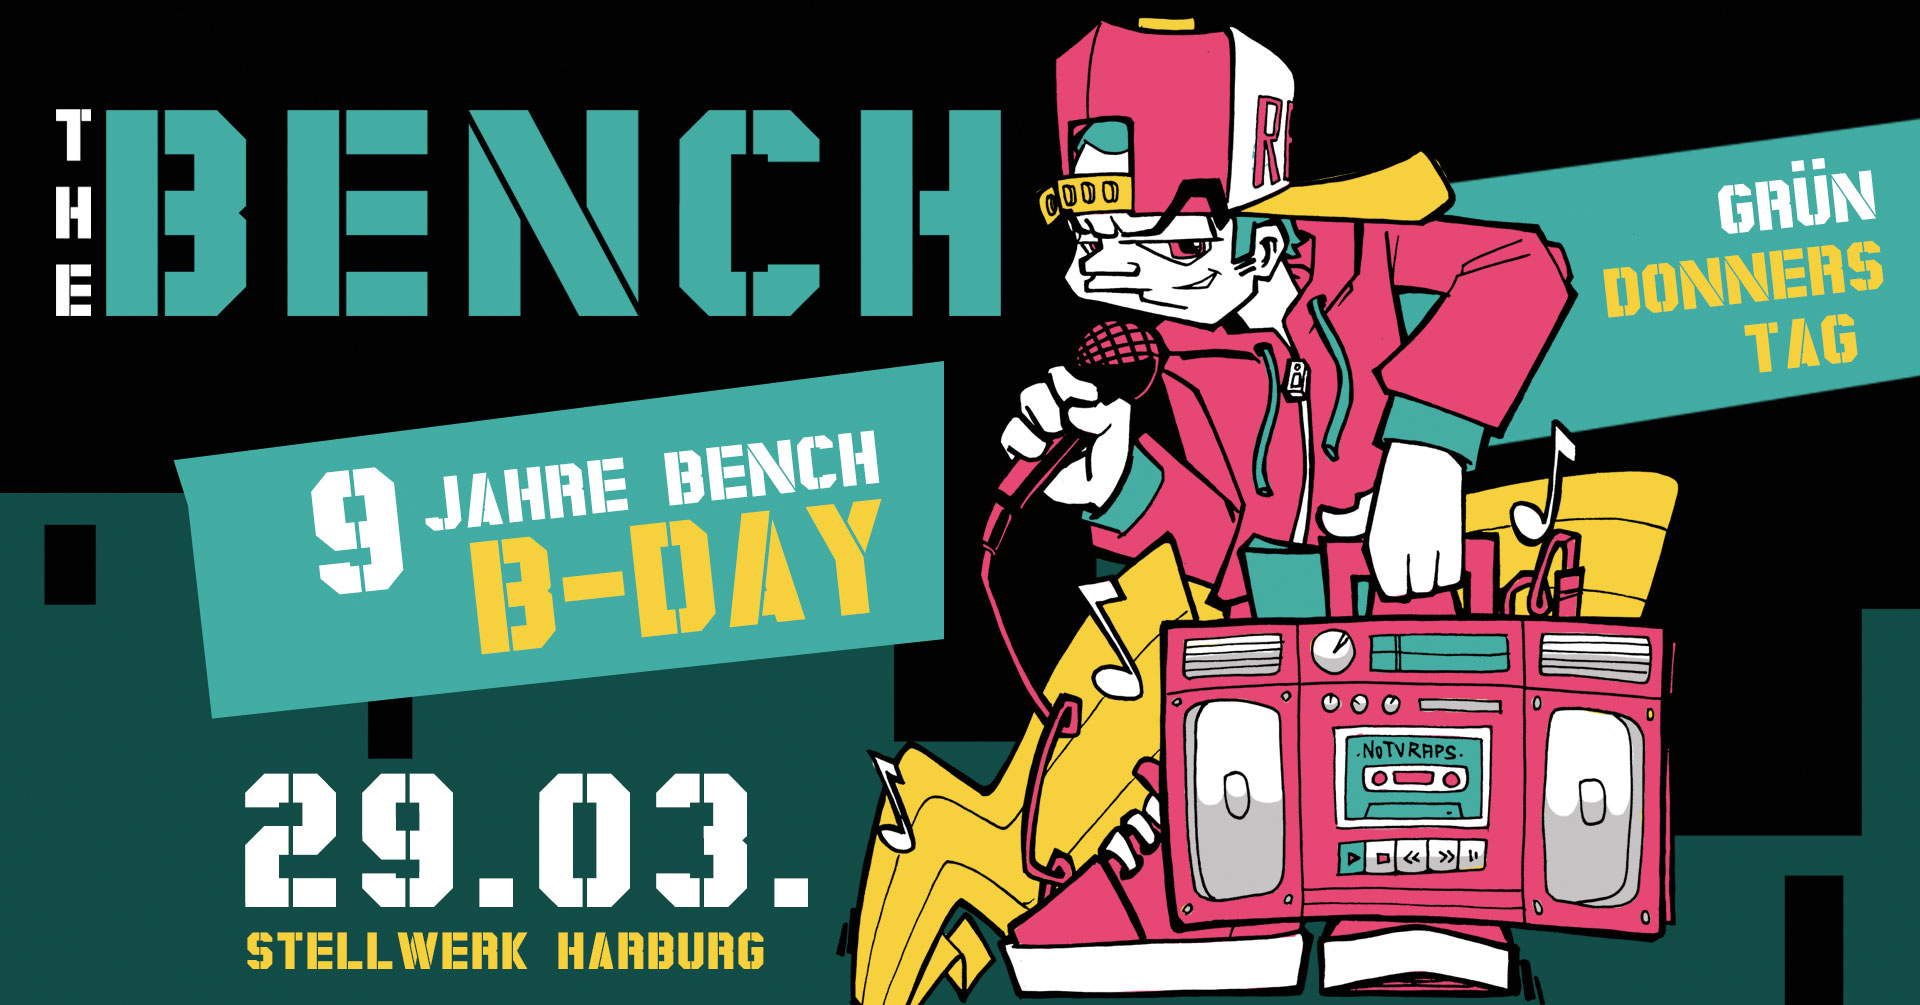 The Bench Birthday 9 Jahre